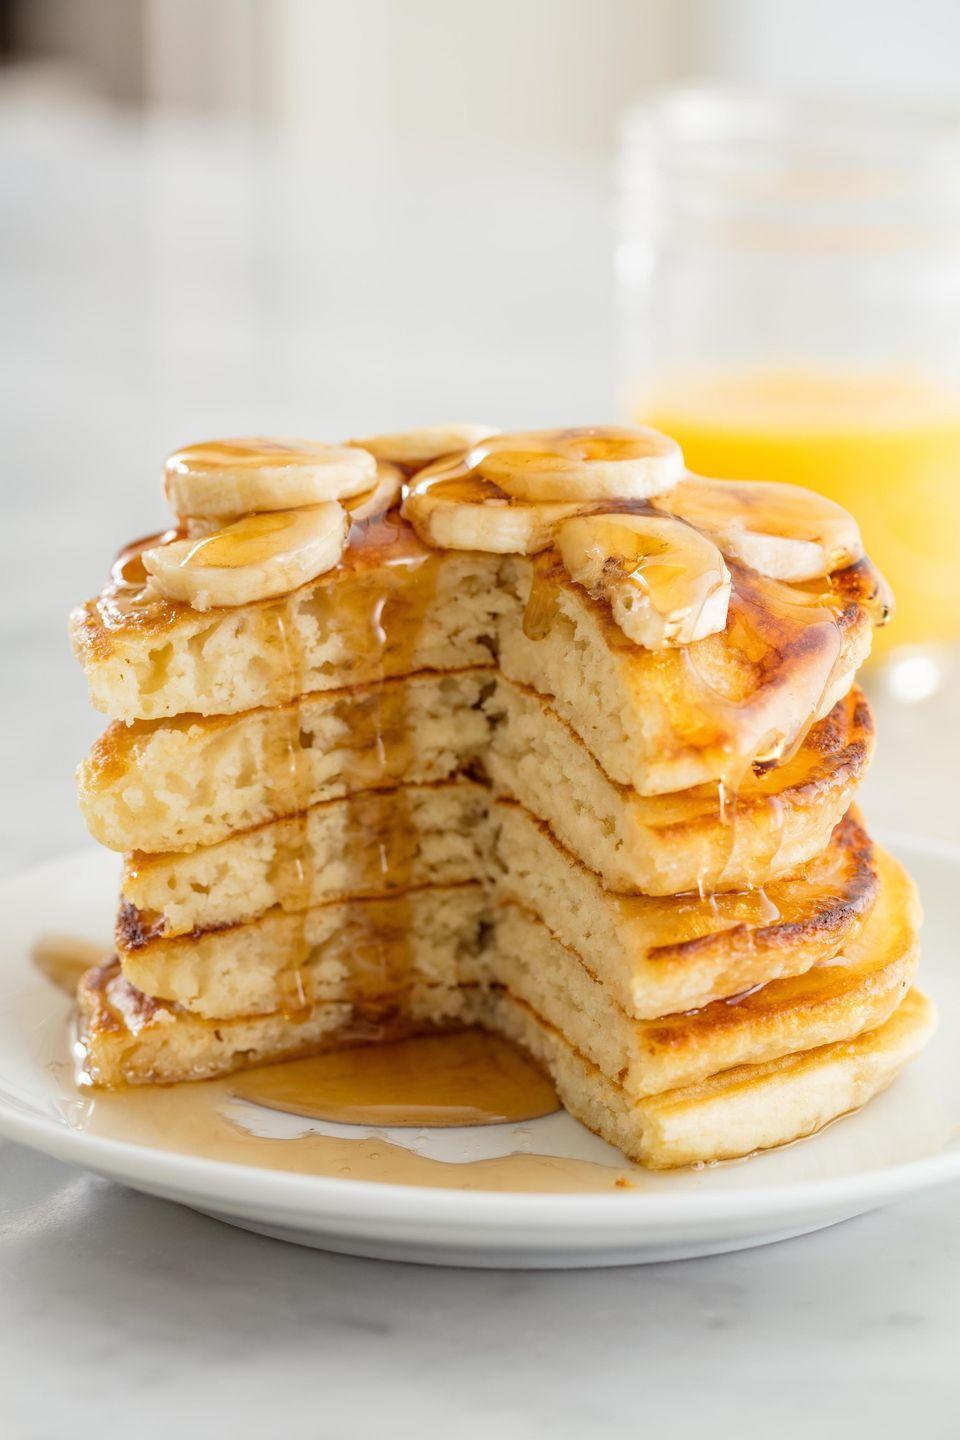 "<p>Fluffy vegan pancakes are still possible.</p><p>Get the recipe from <a href=""https://www.delish.com/cooking/recipe-ideas/recipes/a58451/easy-vegan-pancake-recipe/"" rel=""nofollow noopener"" target=""_blank"" data-ylk=""slk:Delish"" class=""link rapid-noclick-resp"">Delish</a>.</p><p><strong><em>BUY NOW: Nonstick Skillet, $32.65, <a href=""https://www.amazon.com/Calphalon-Piece-Classic-Nonstick-Grey/dp/B01APP1X2I/?tag=syn-yahoo-20&ascsubtag=%5Bartid%7C1782.g.4783%5Bsrc%7Cyahoo-us"" rel=""nofollow noopener"" target=""_blank"" data-ylk=""slk:amazon.com"" class=""link rapid-noclick-resp"">amazon.com</a>.</em></strong></p>"